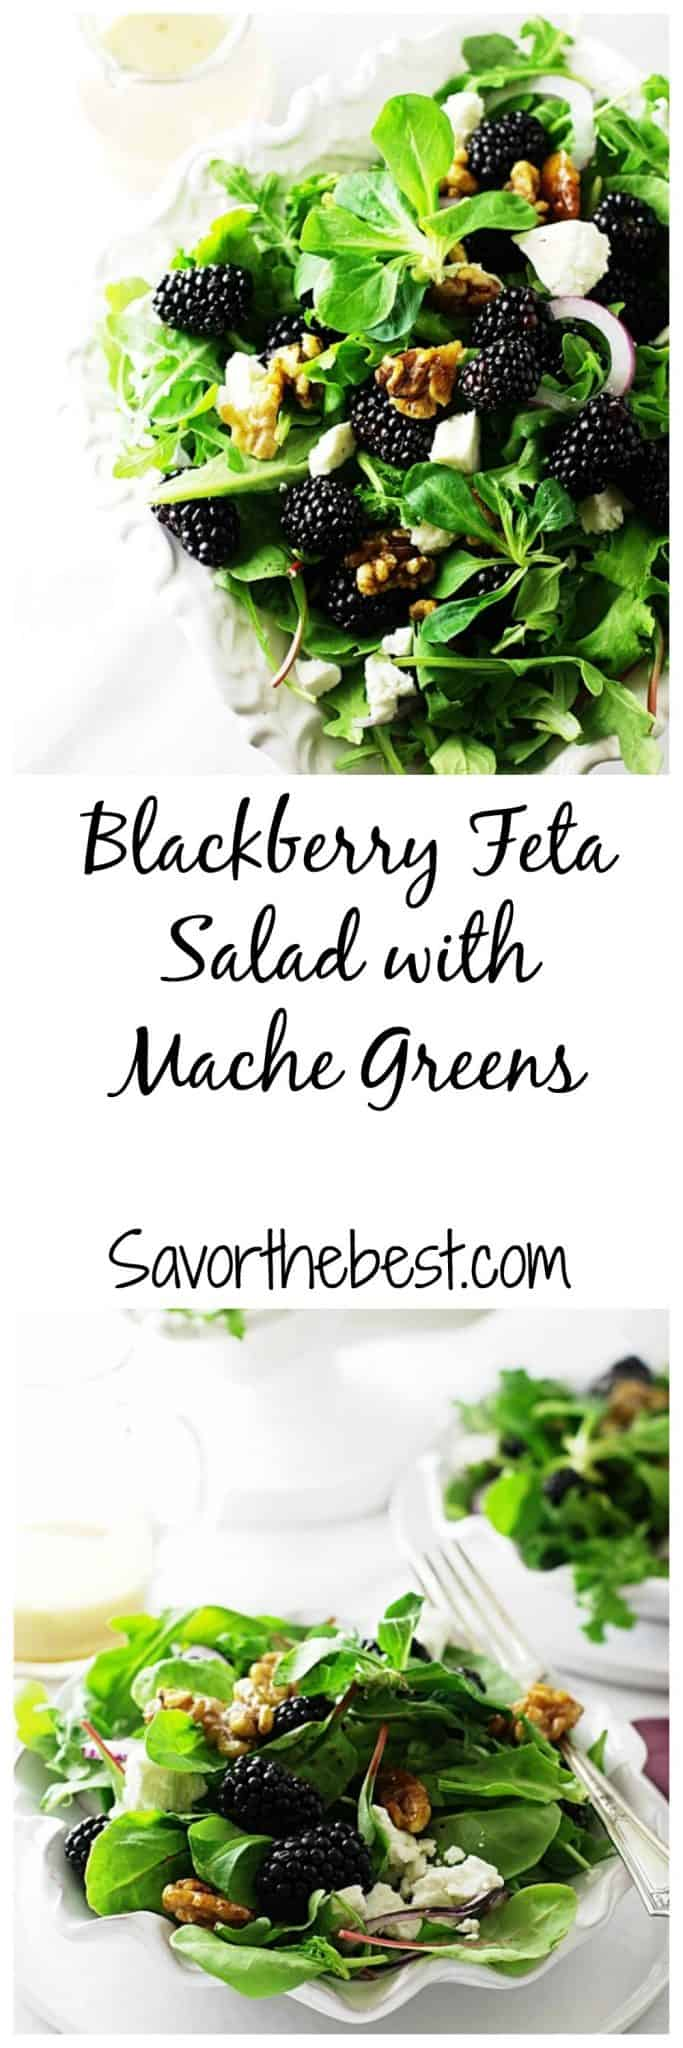 blackberry feta salad with mache greens